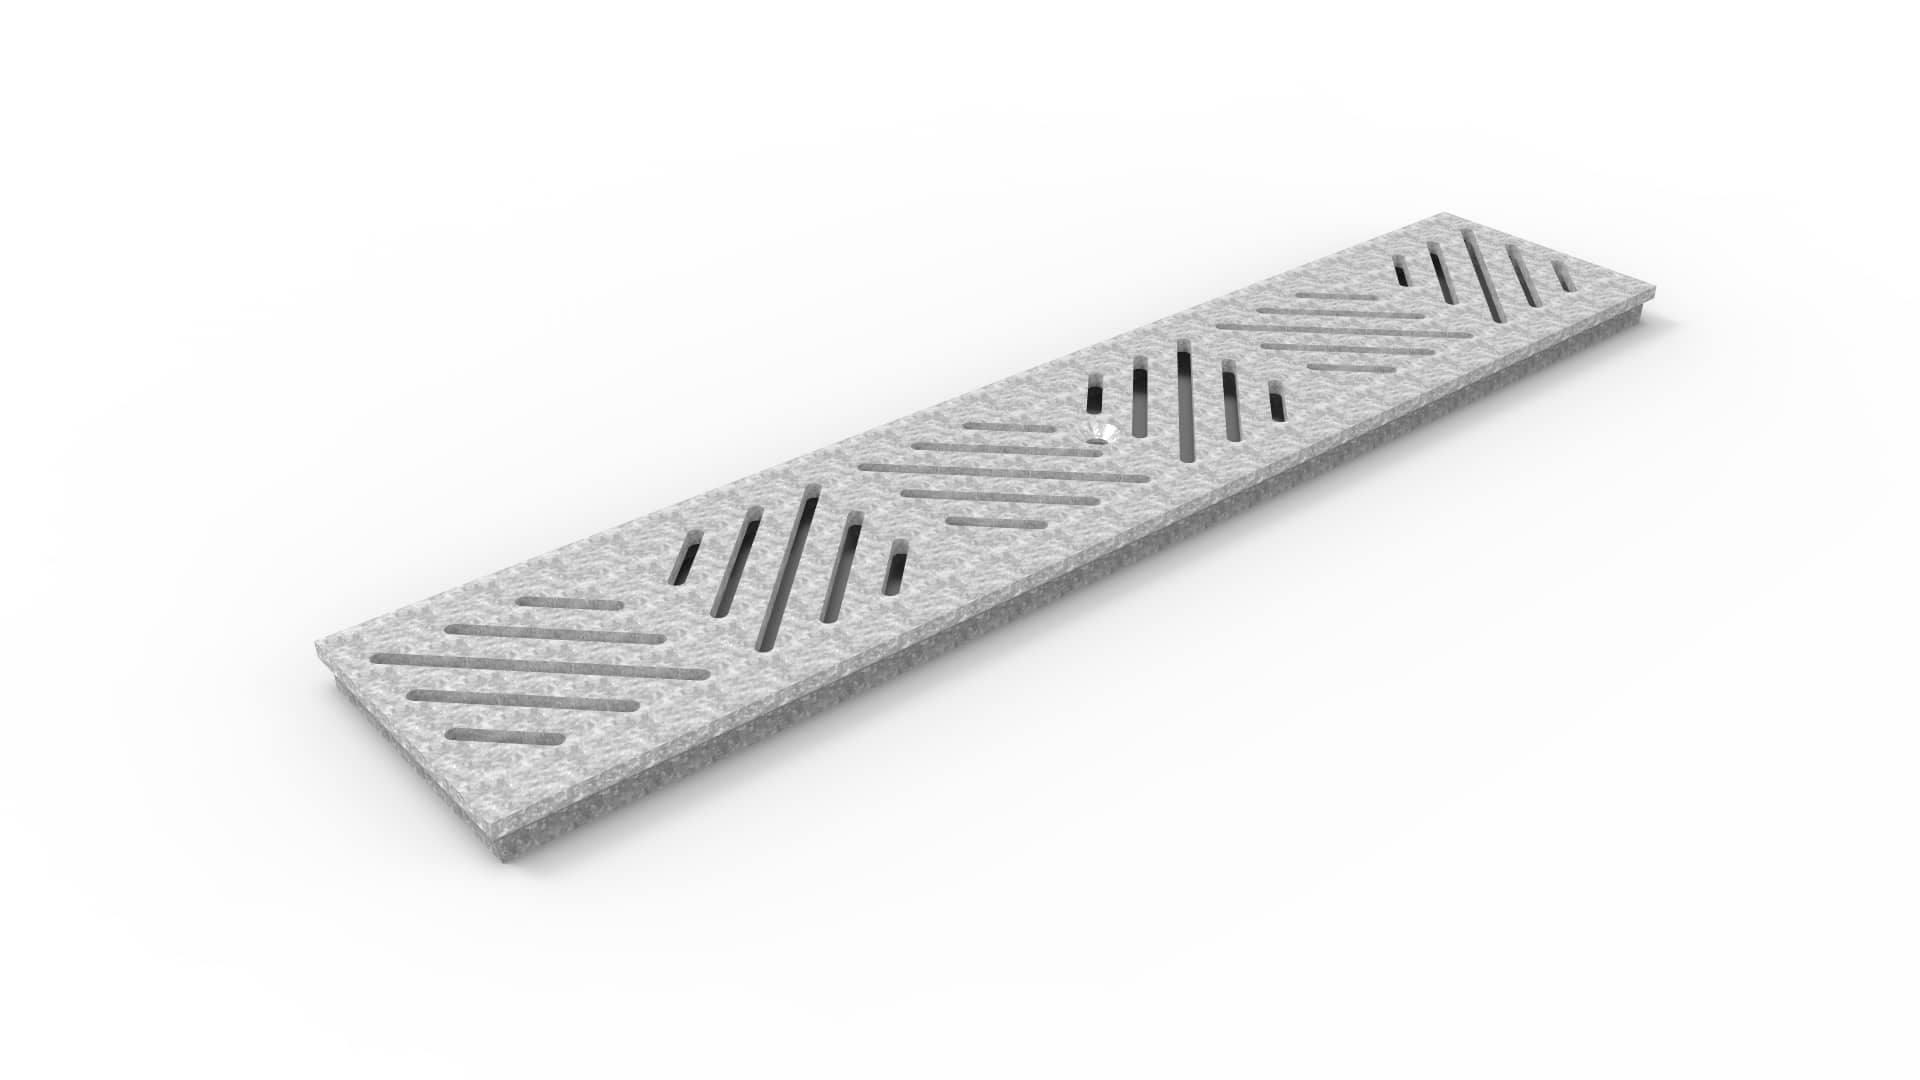 05F24GS - 5 inch wide trench drain grate diagonal slotted galvanized steel